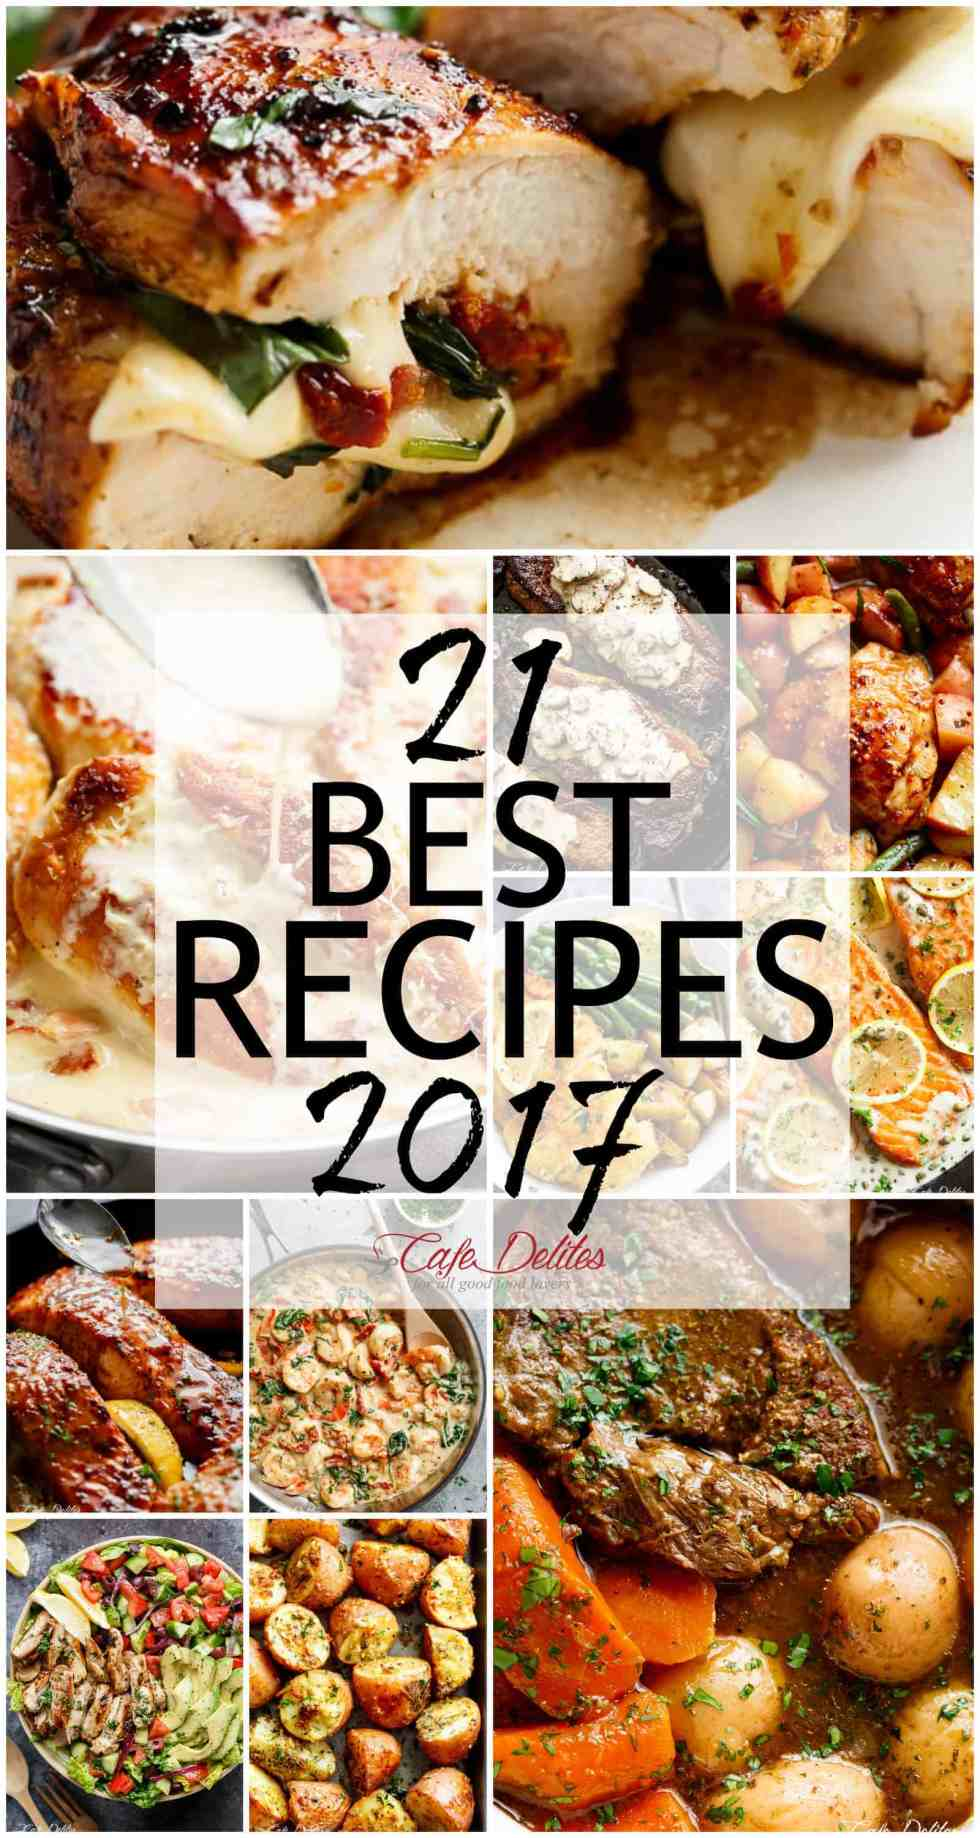 21 Best Recipes 2017 | cafedelites.com